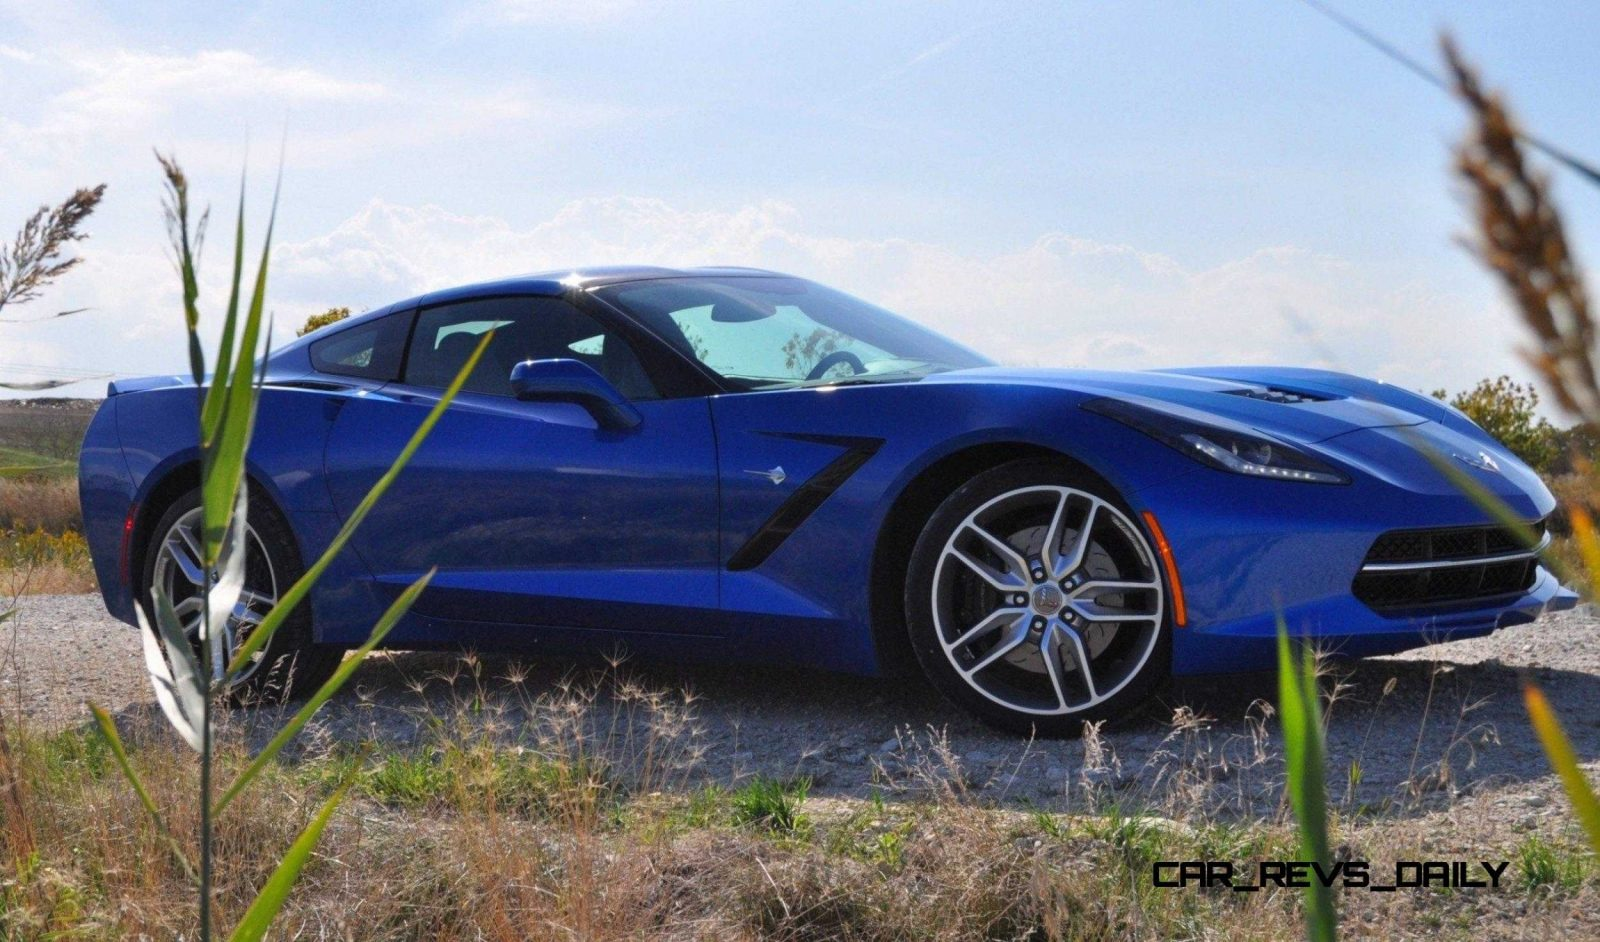 2014 Chevrolet Corvette Stingray Z51 in 102 Photos21